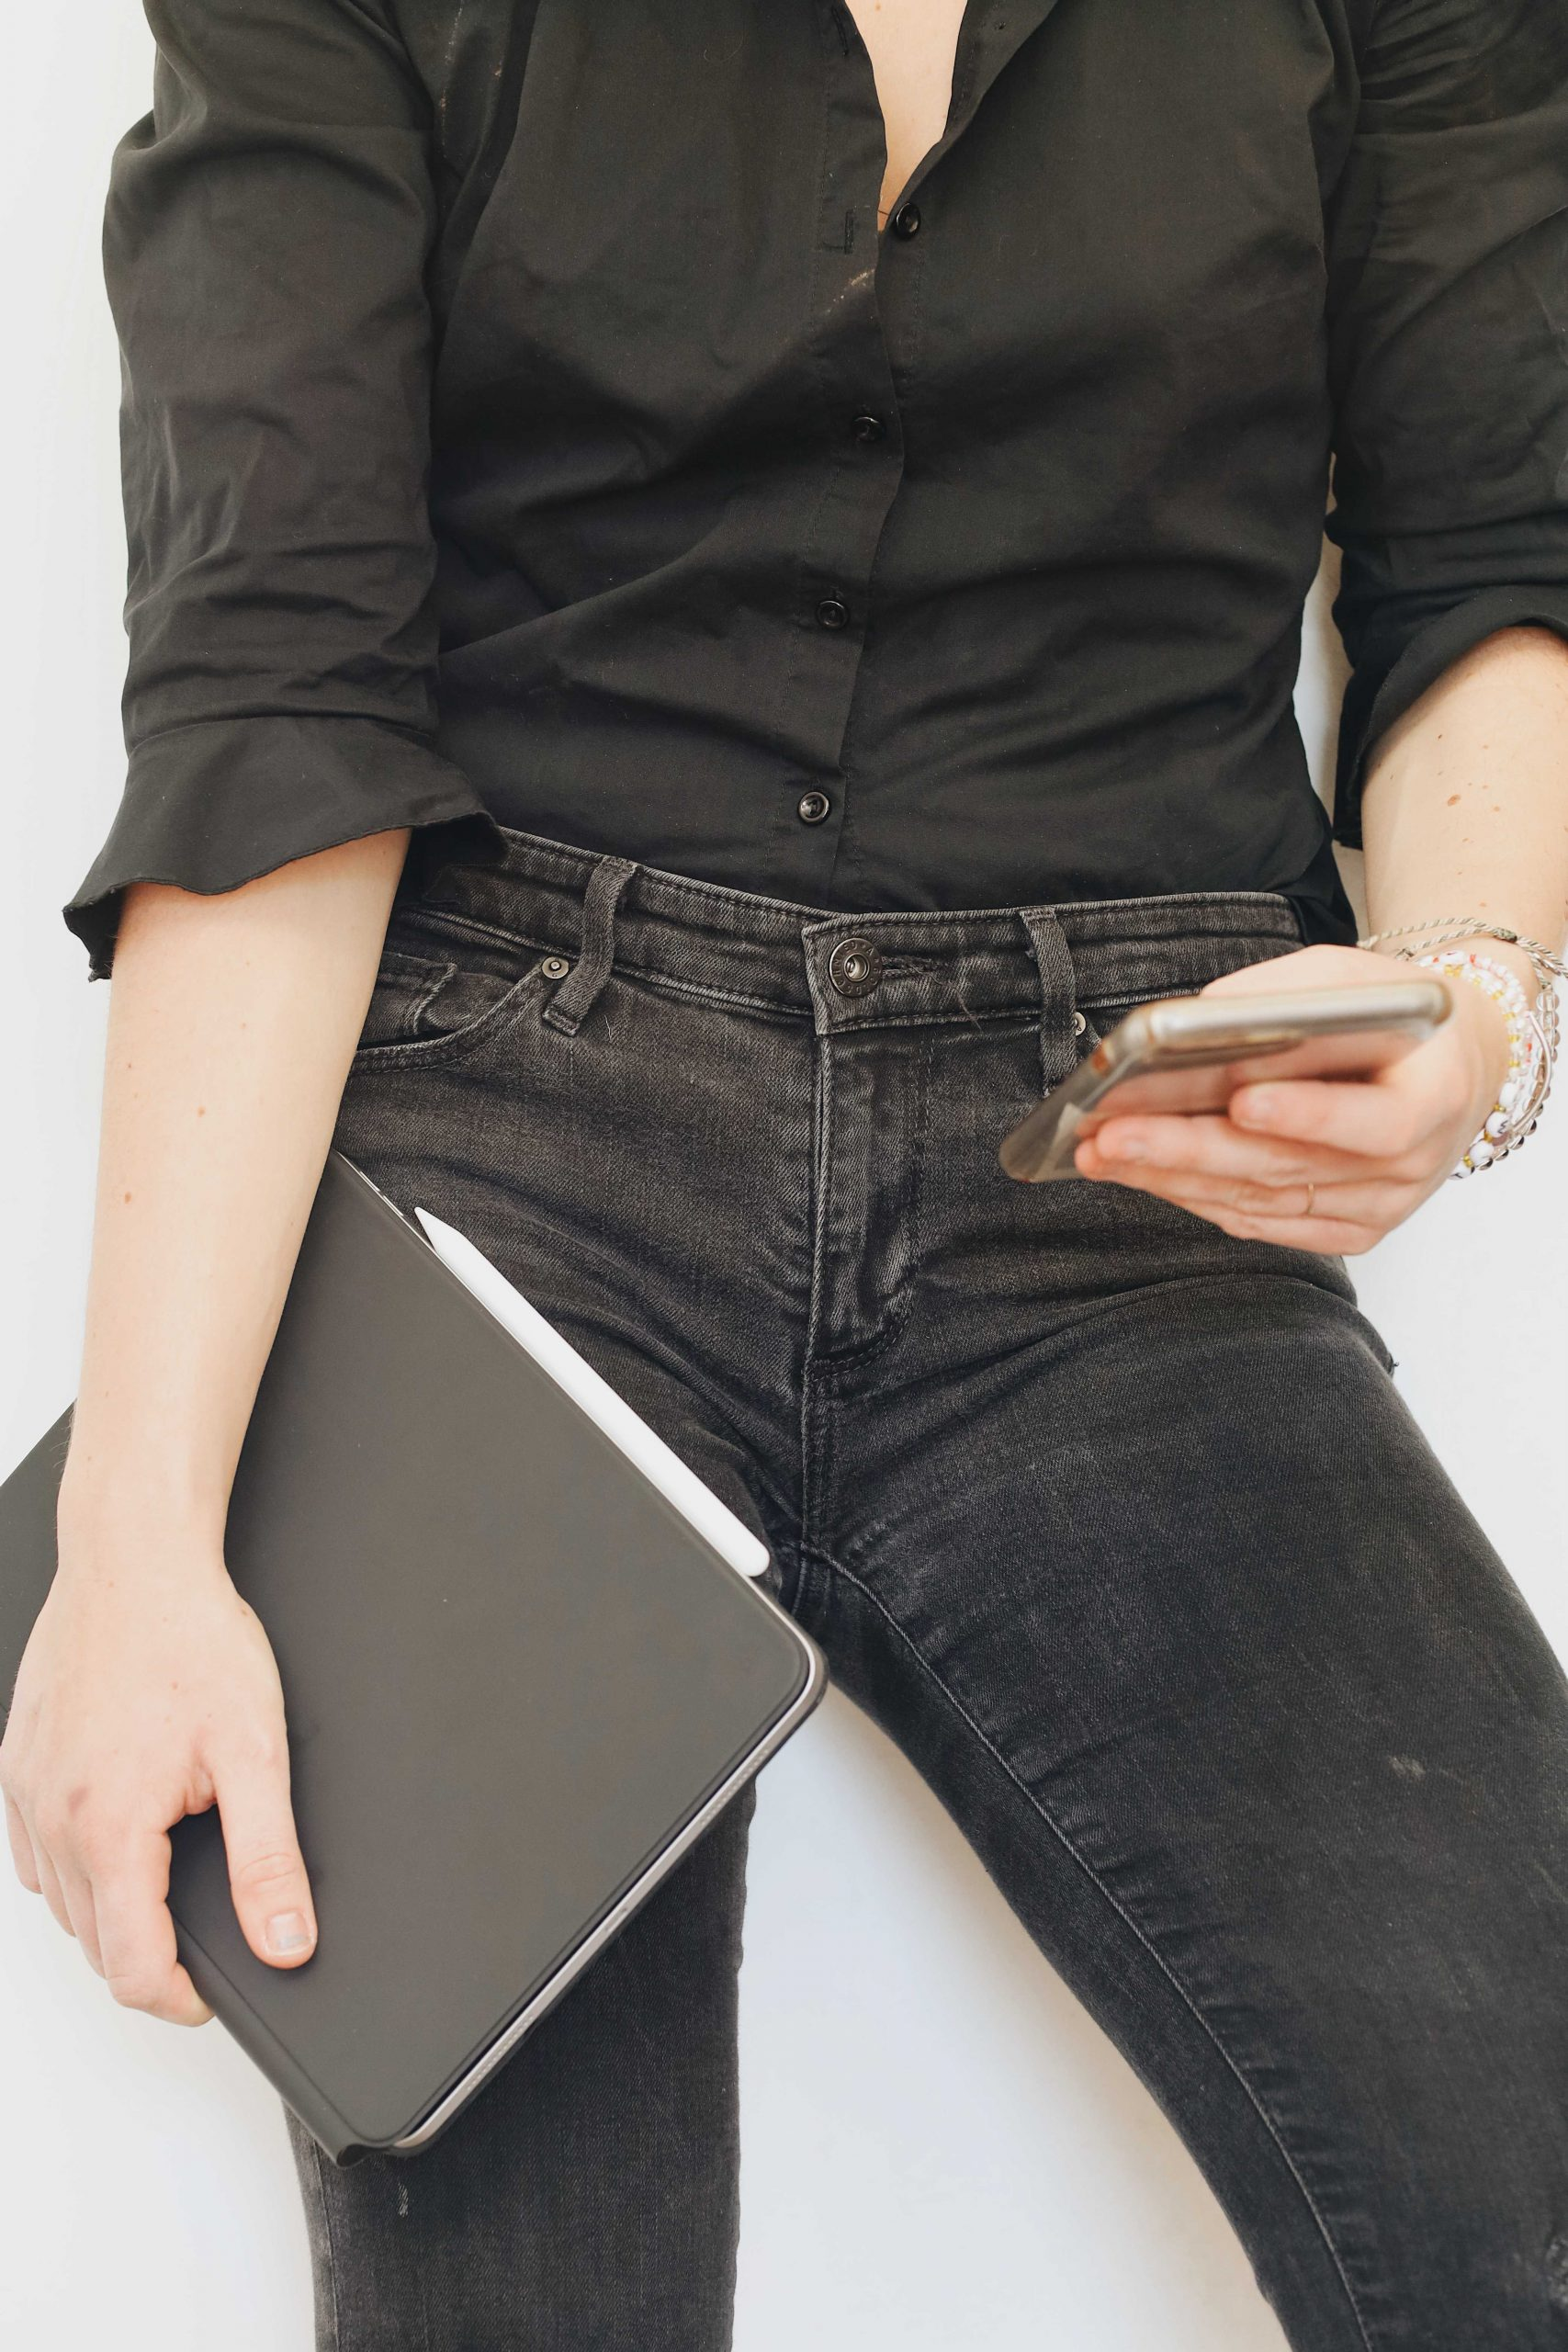 How To Wear Jeans To Work & Still Look Professional